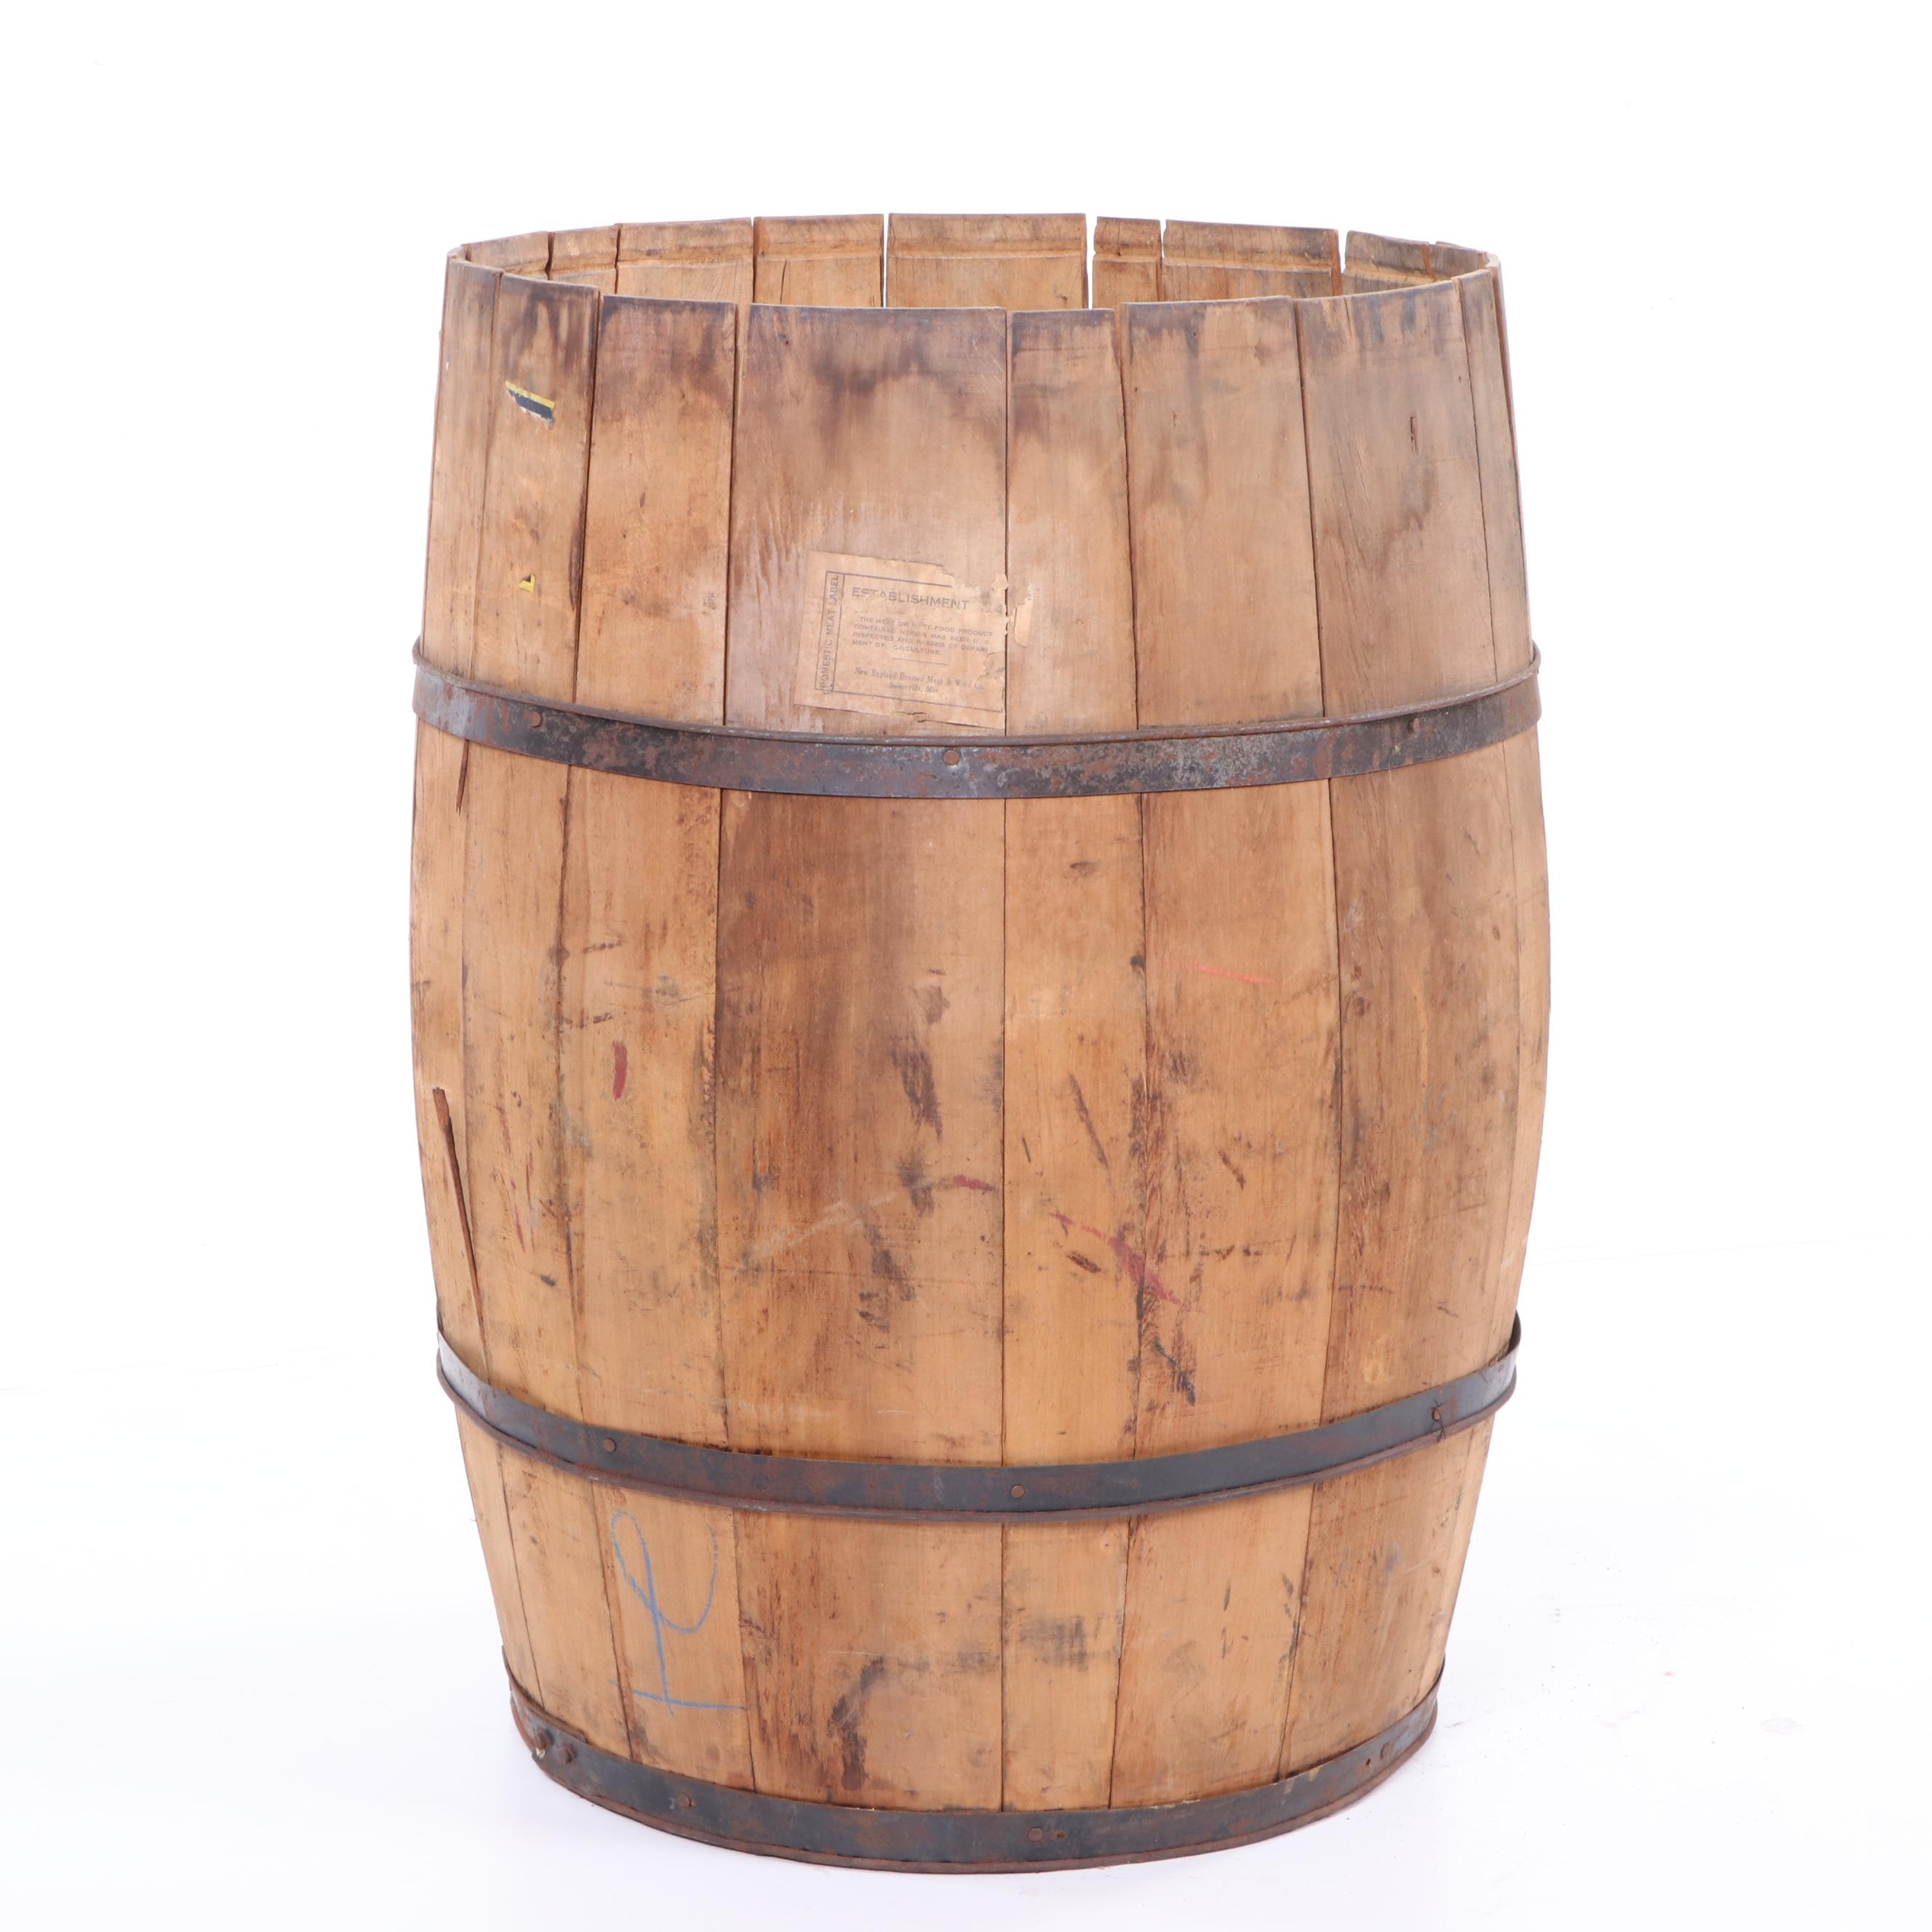 New England Dressed Meat & Wool Co. Wooden Barrel, Late 19th/ Early 20th C.